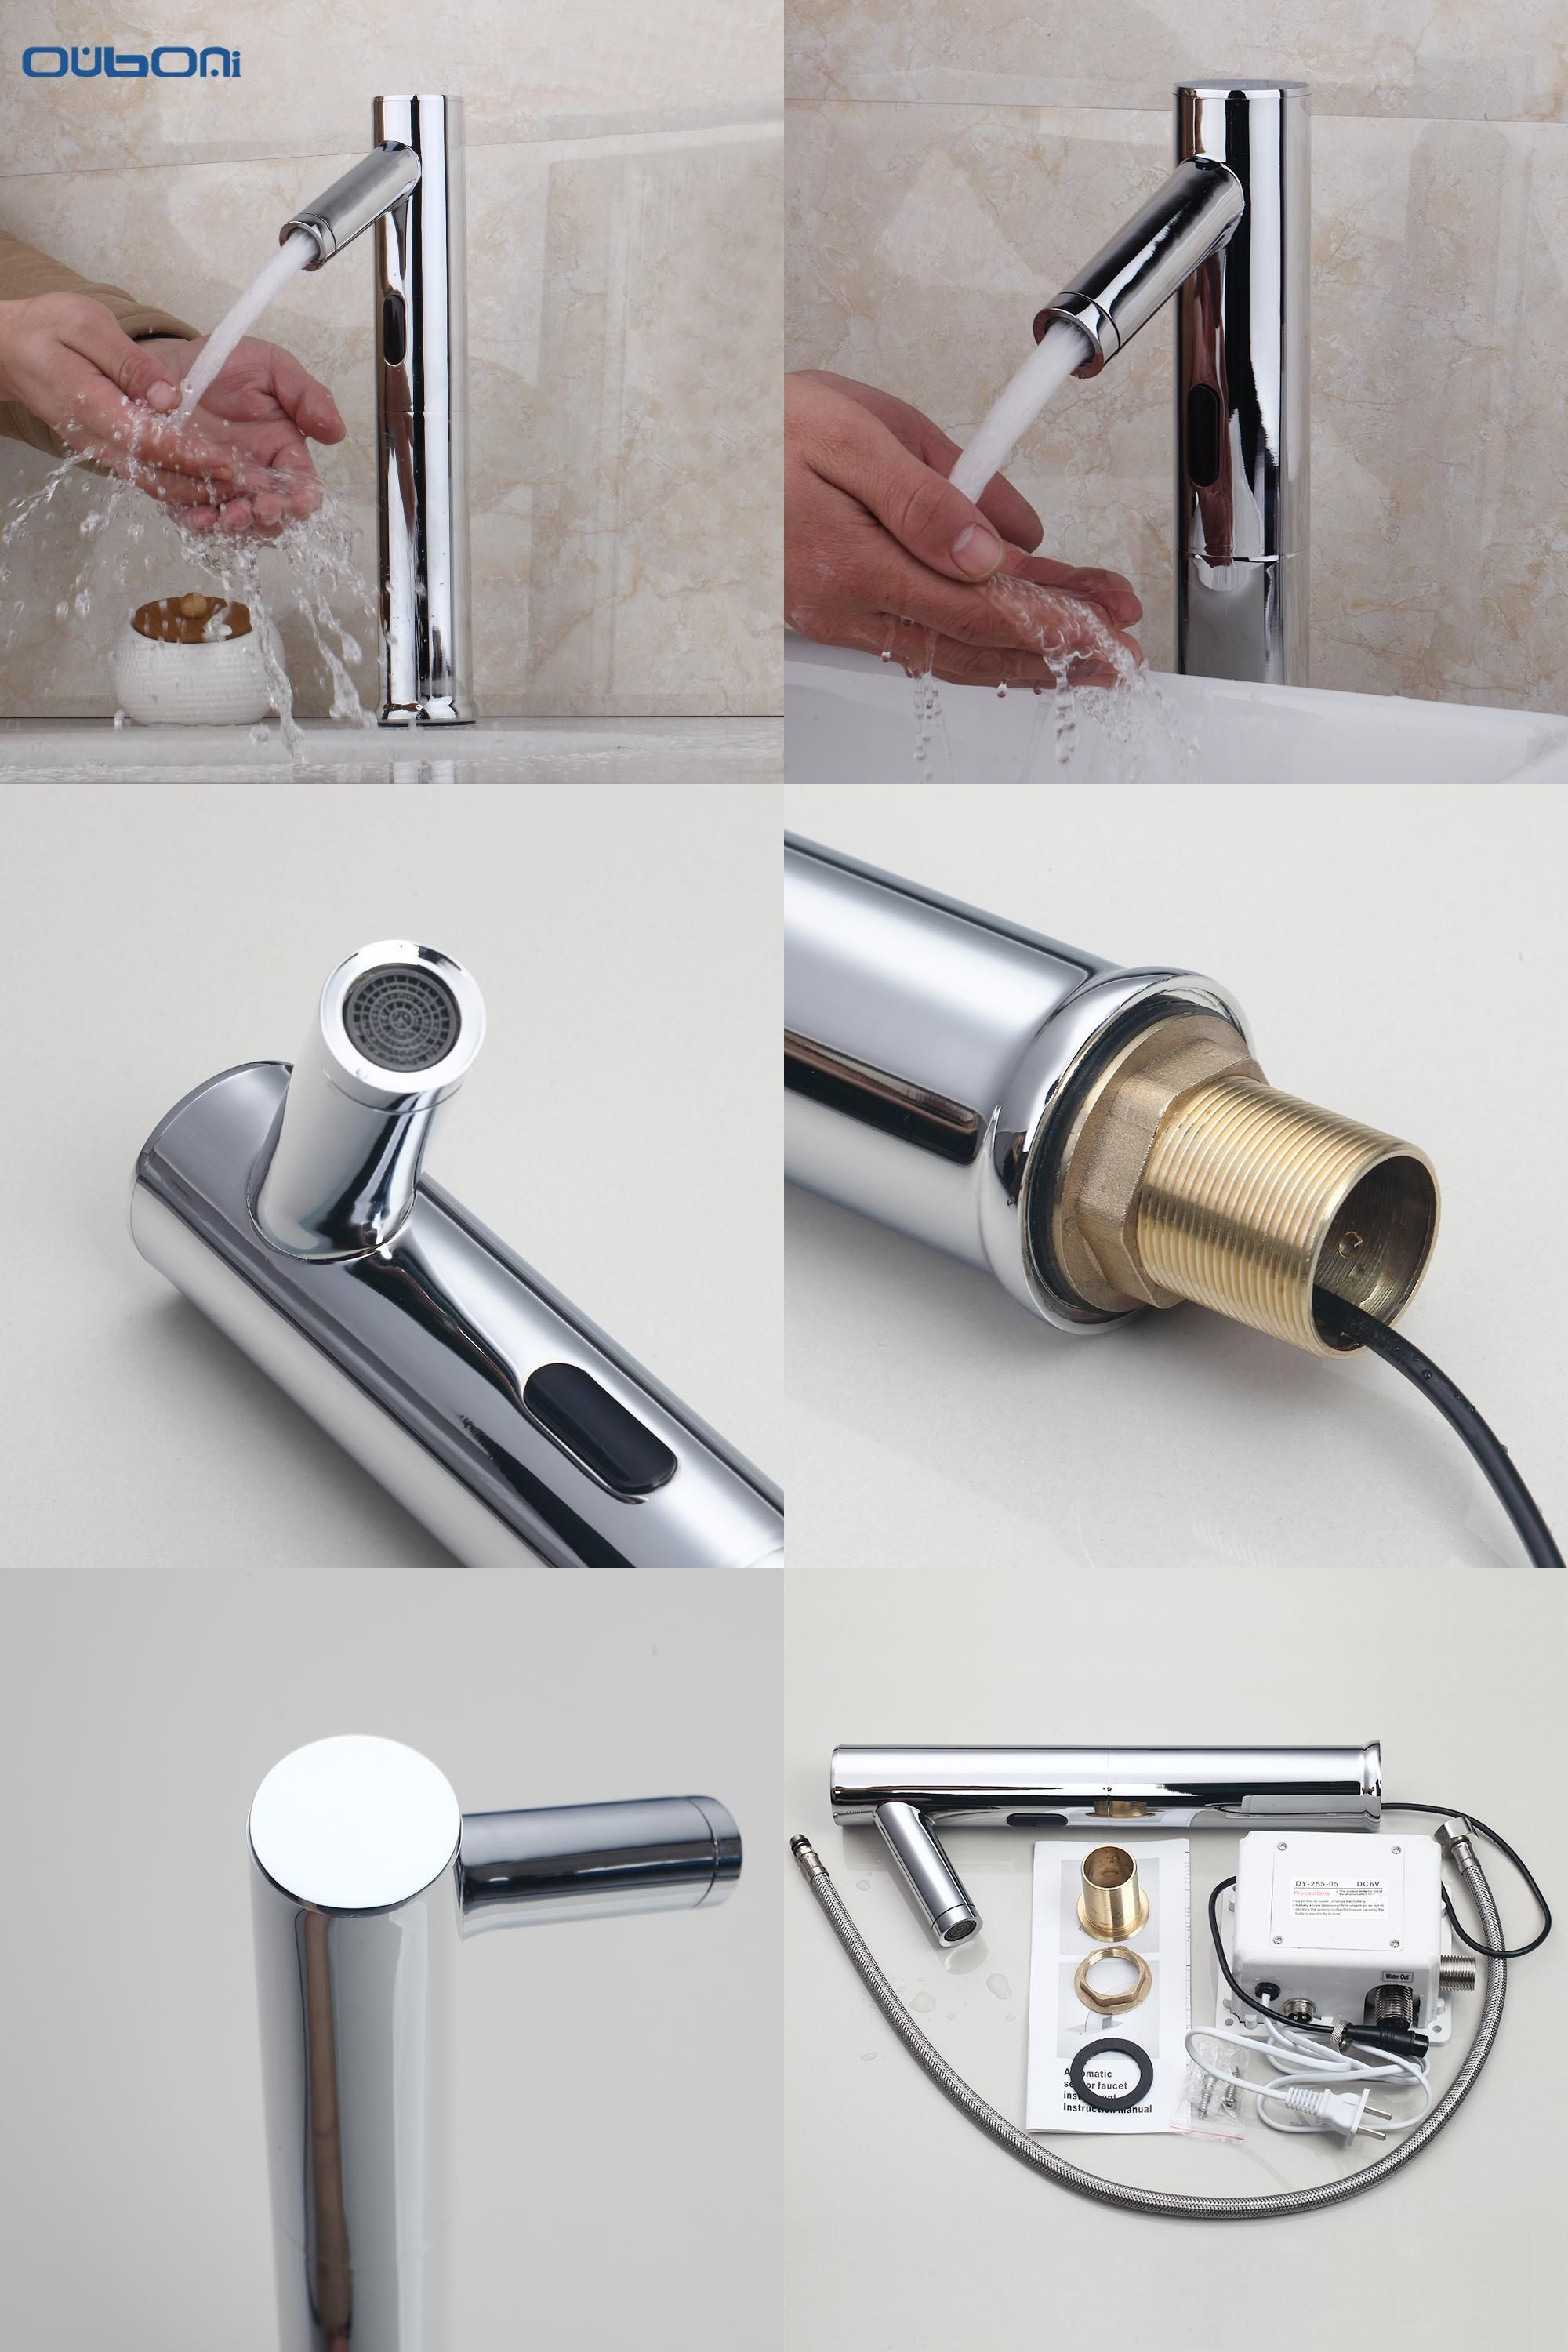 Visit to Buy] New Brass Bathroom Automatic Sensor Mixer Touch Free ...